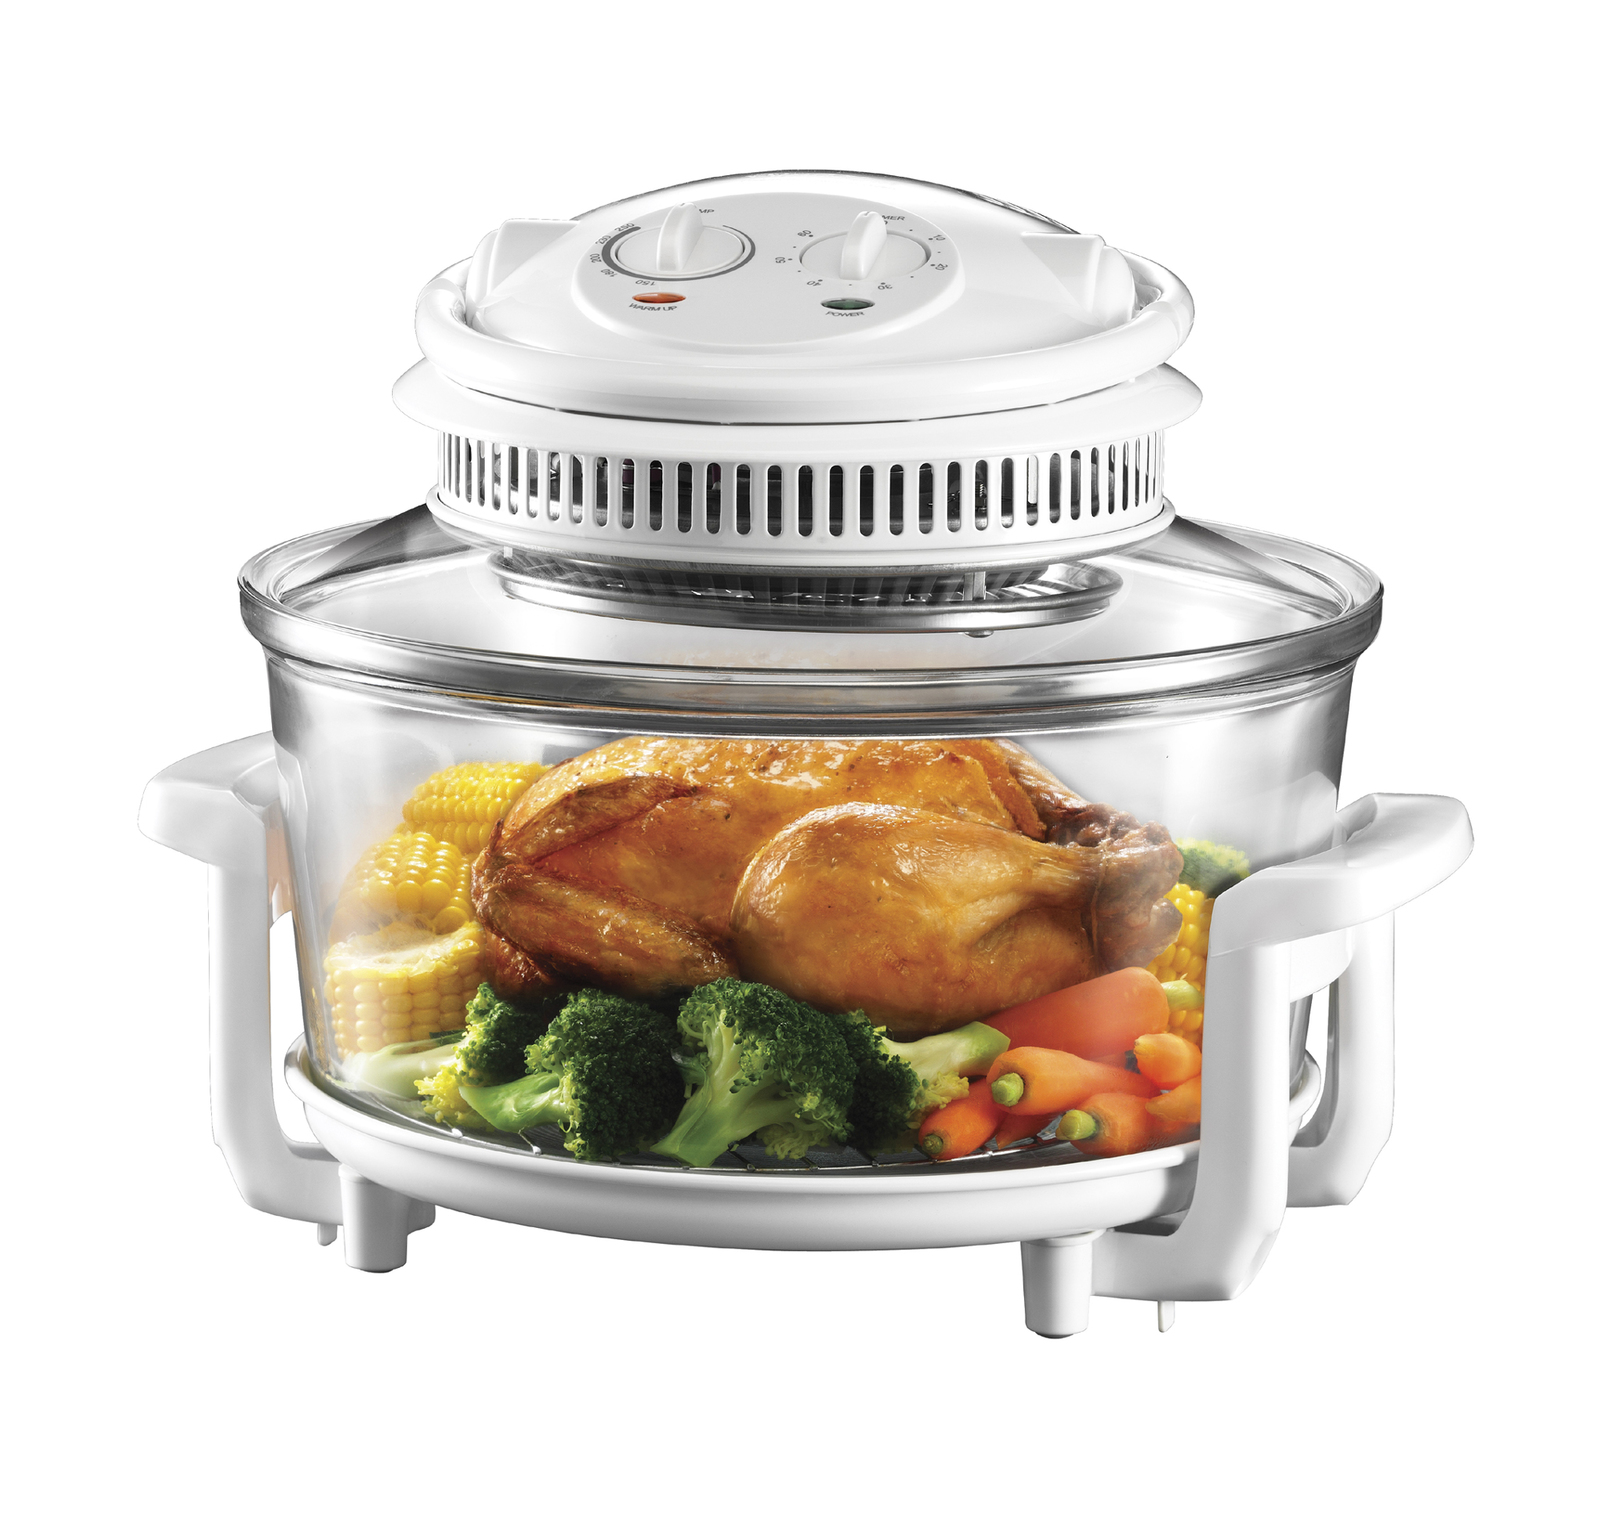 Sunbeam: NutriOven Convection Oven image